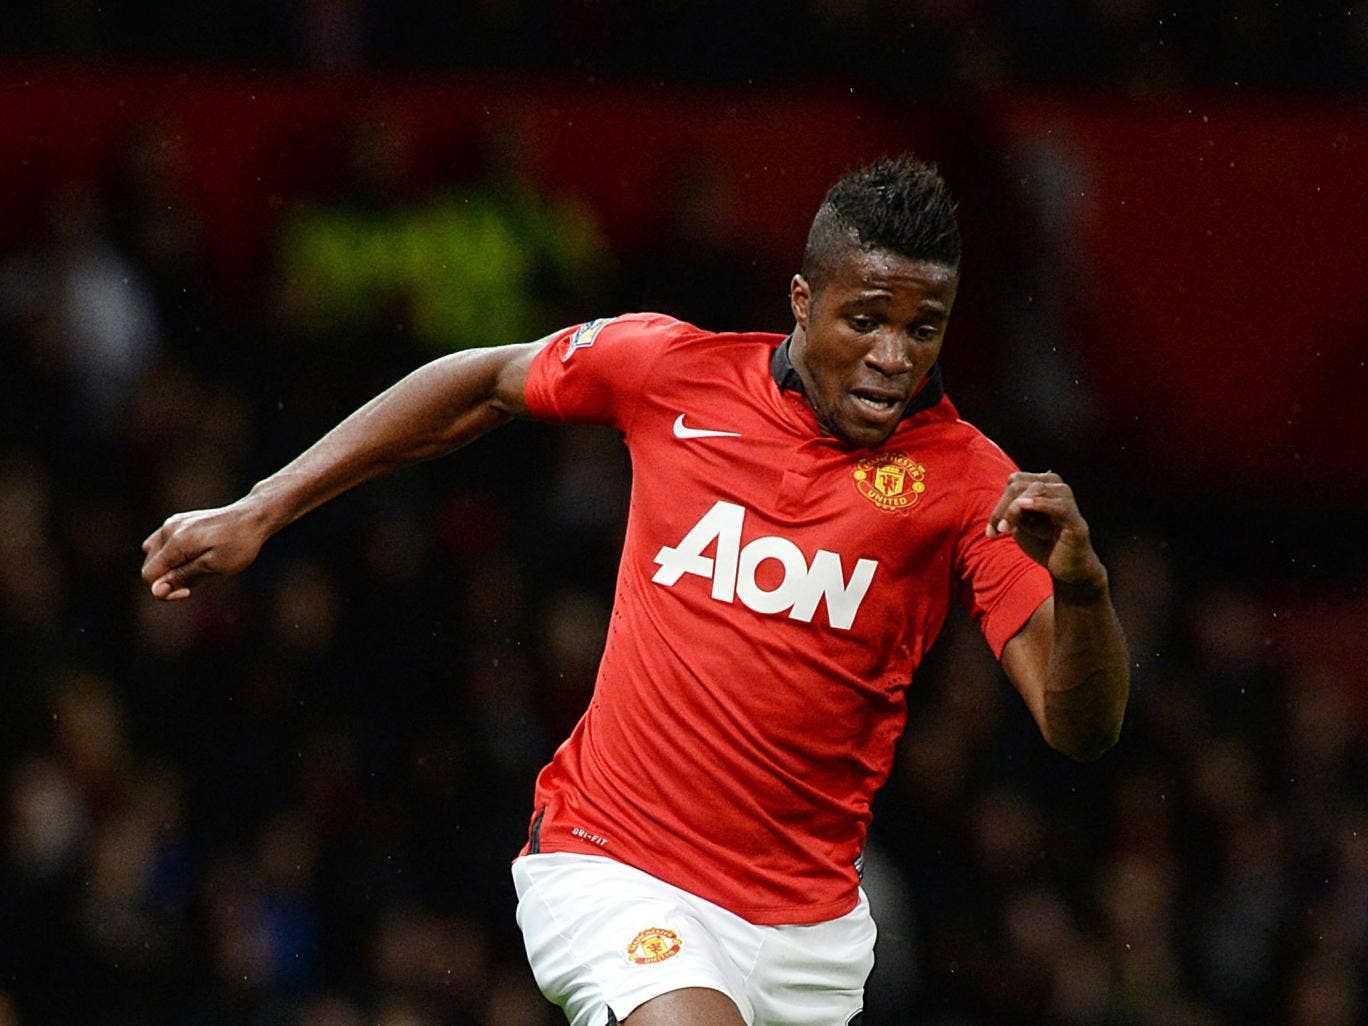 Wilfried Zaha has made just two substitute appearances for United in the league since joining